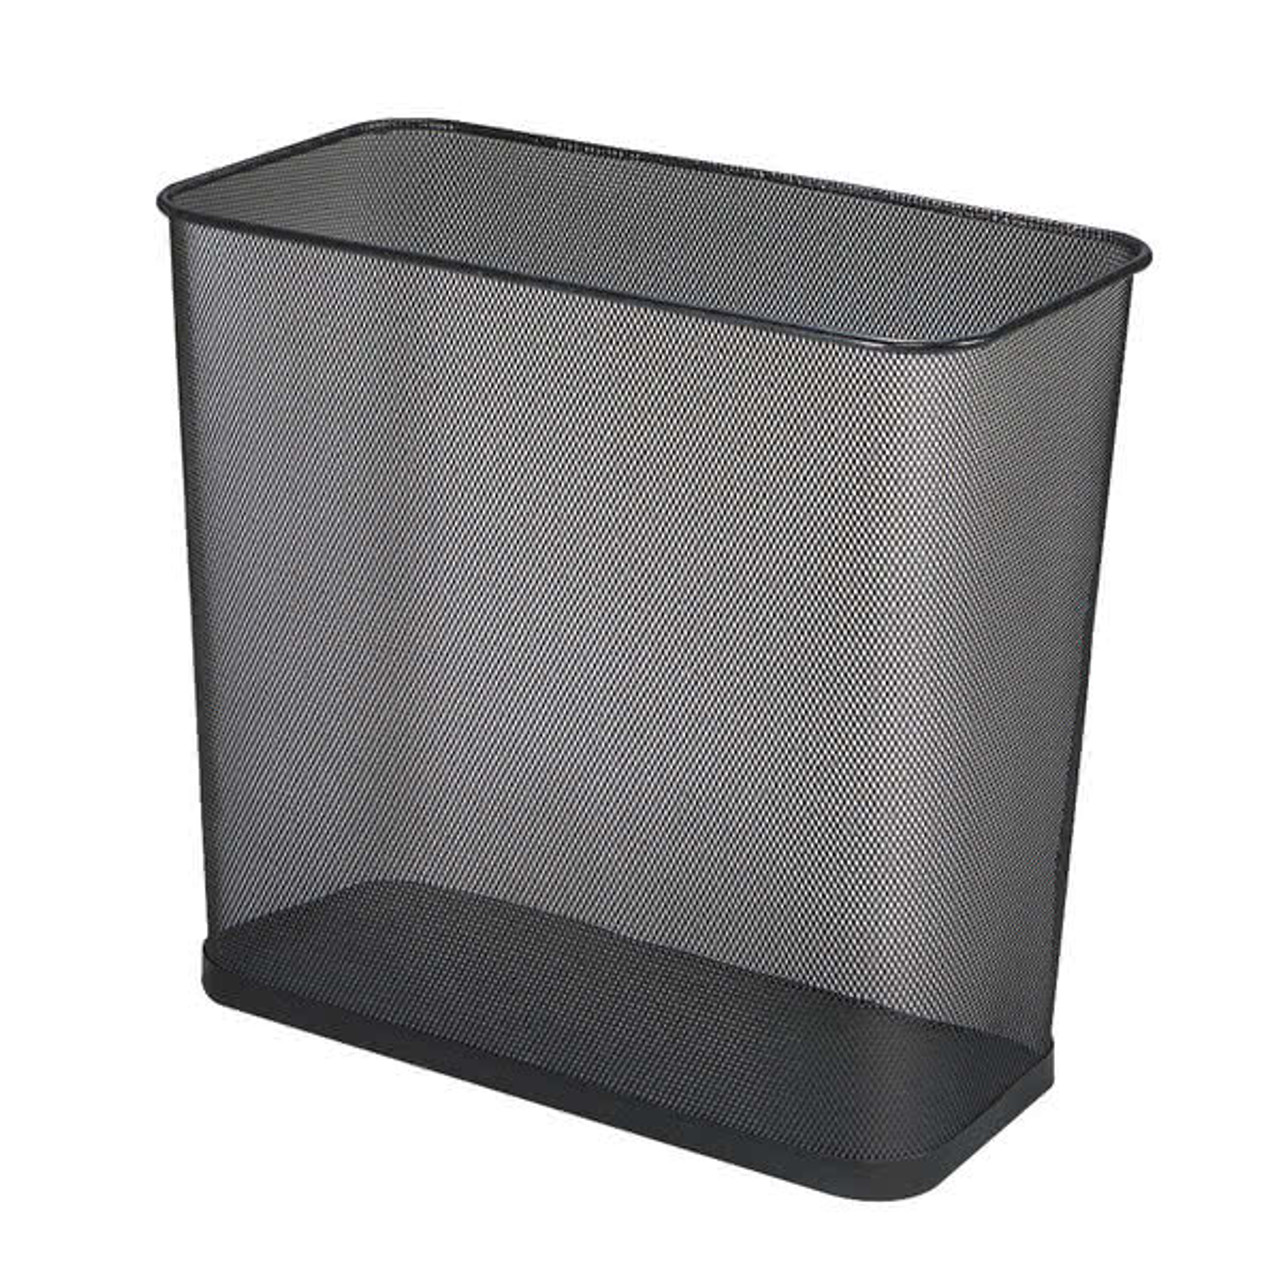 Rubbermaid Concept Collection Rectangular - FGWMB30RBK